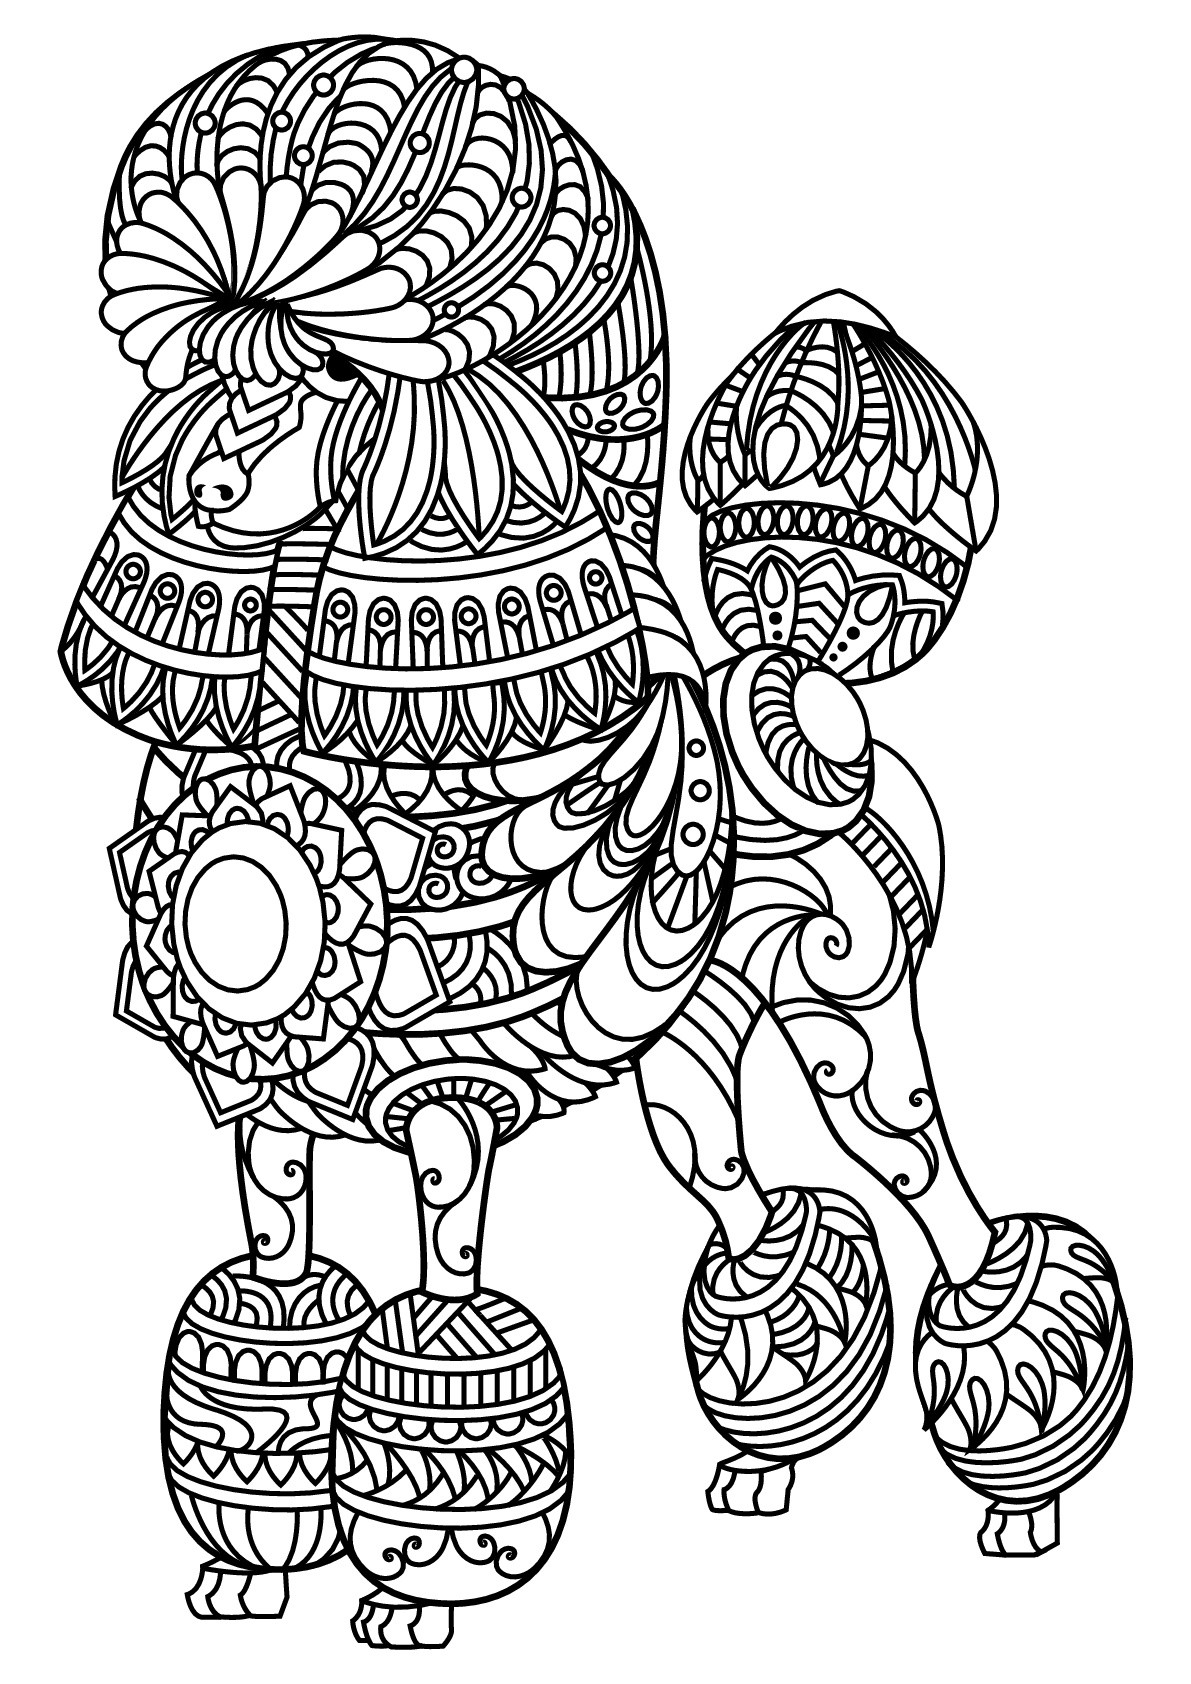 Best ideas about Dogs Coloring Pages For Adults . Save or Pin Free book dog poodle Dogs Adult Coloring Pages Now.